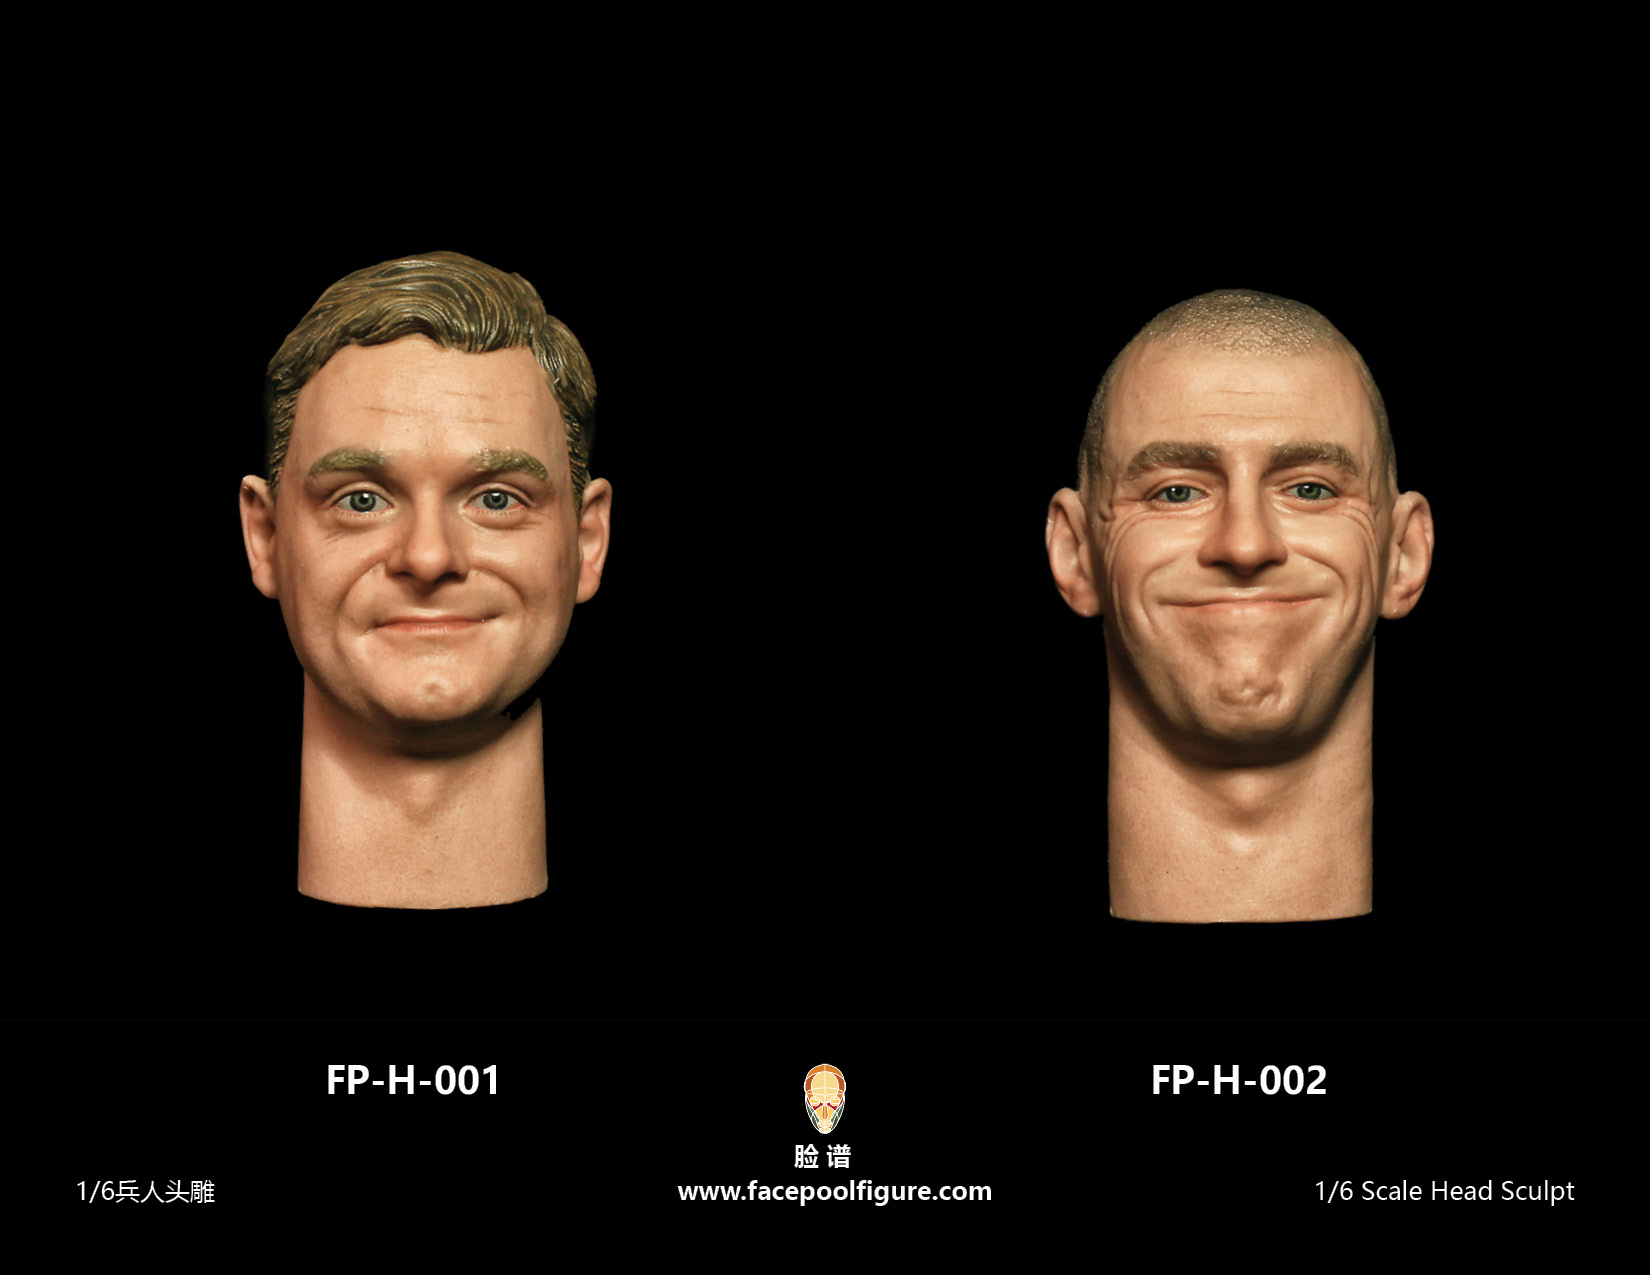 22/08/2018 Facepoolfigure FP-H-001 / FP-H-002 Male Head Sculpt with Expression